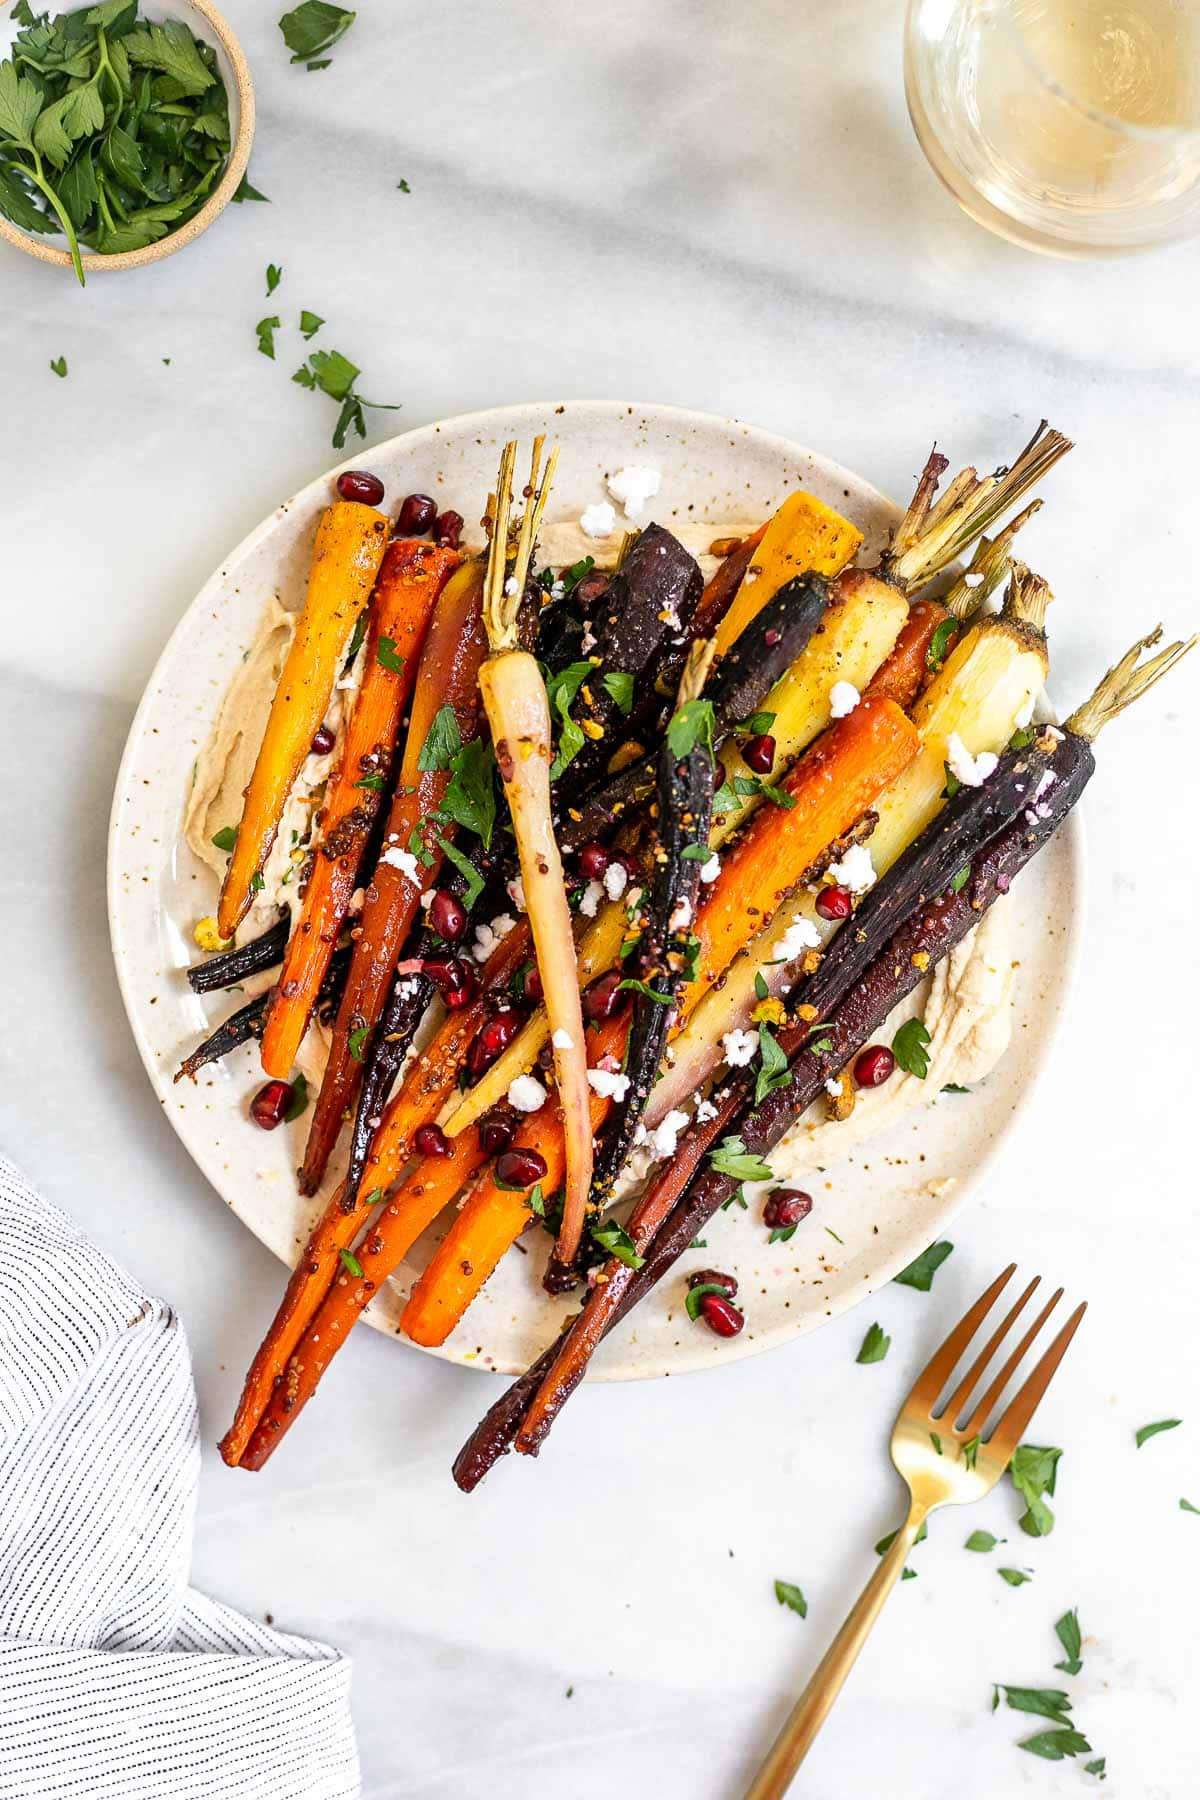 Roasted veggies on a plate with pomegranate on top.